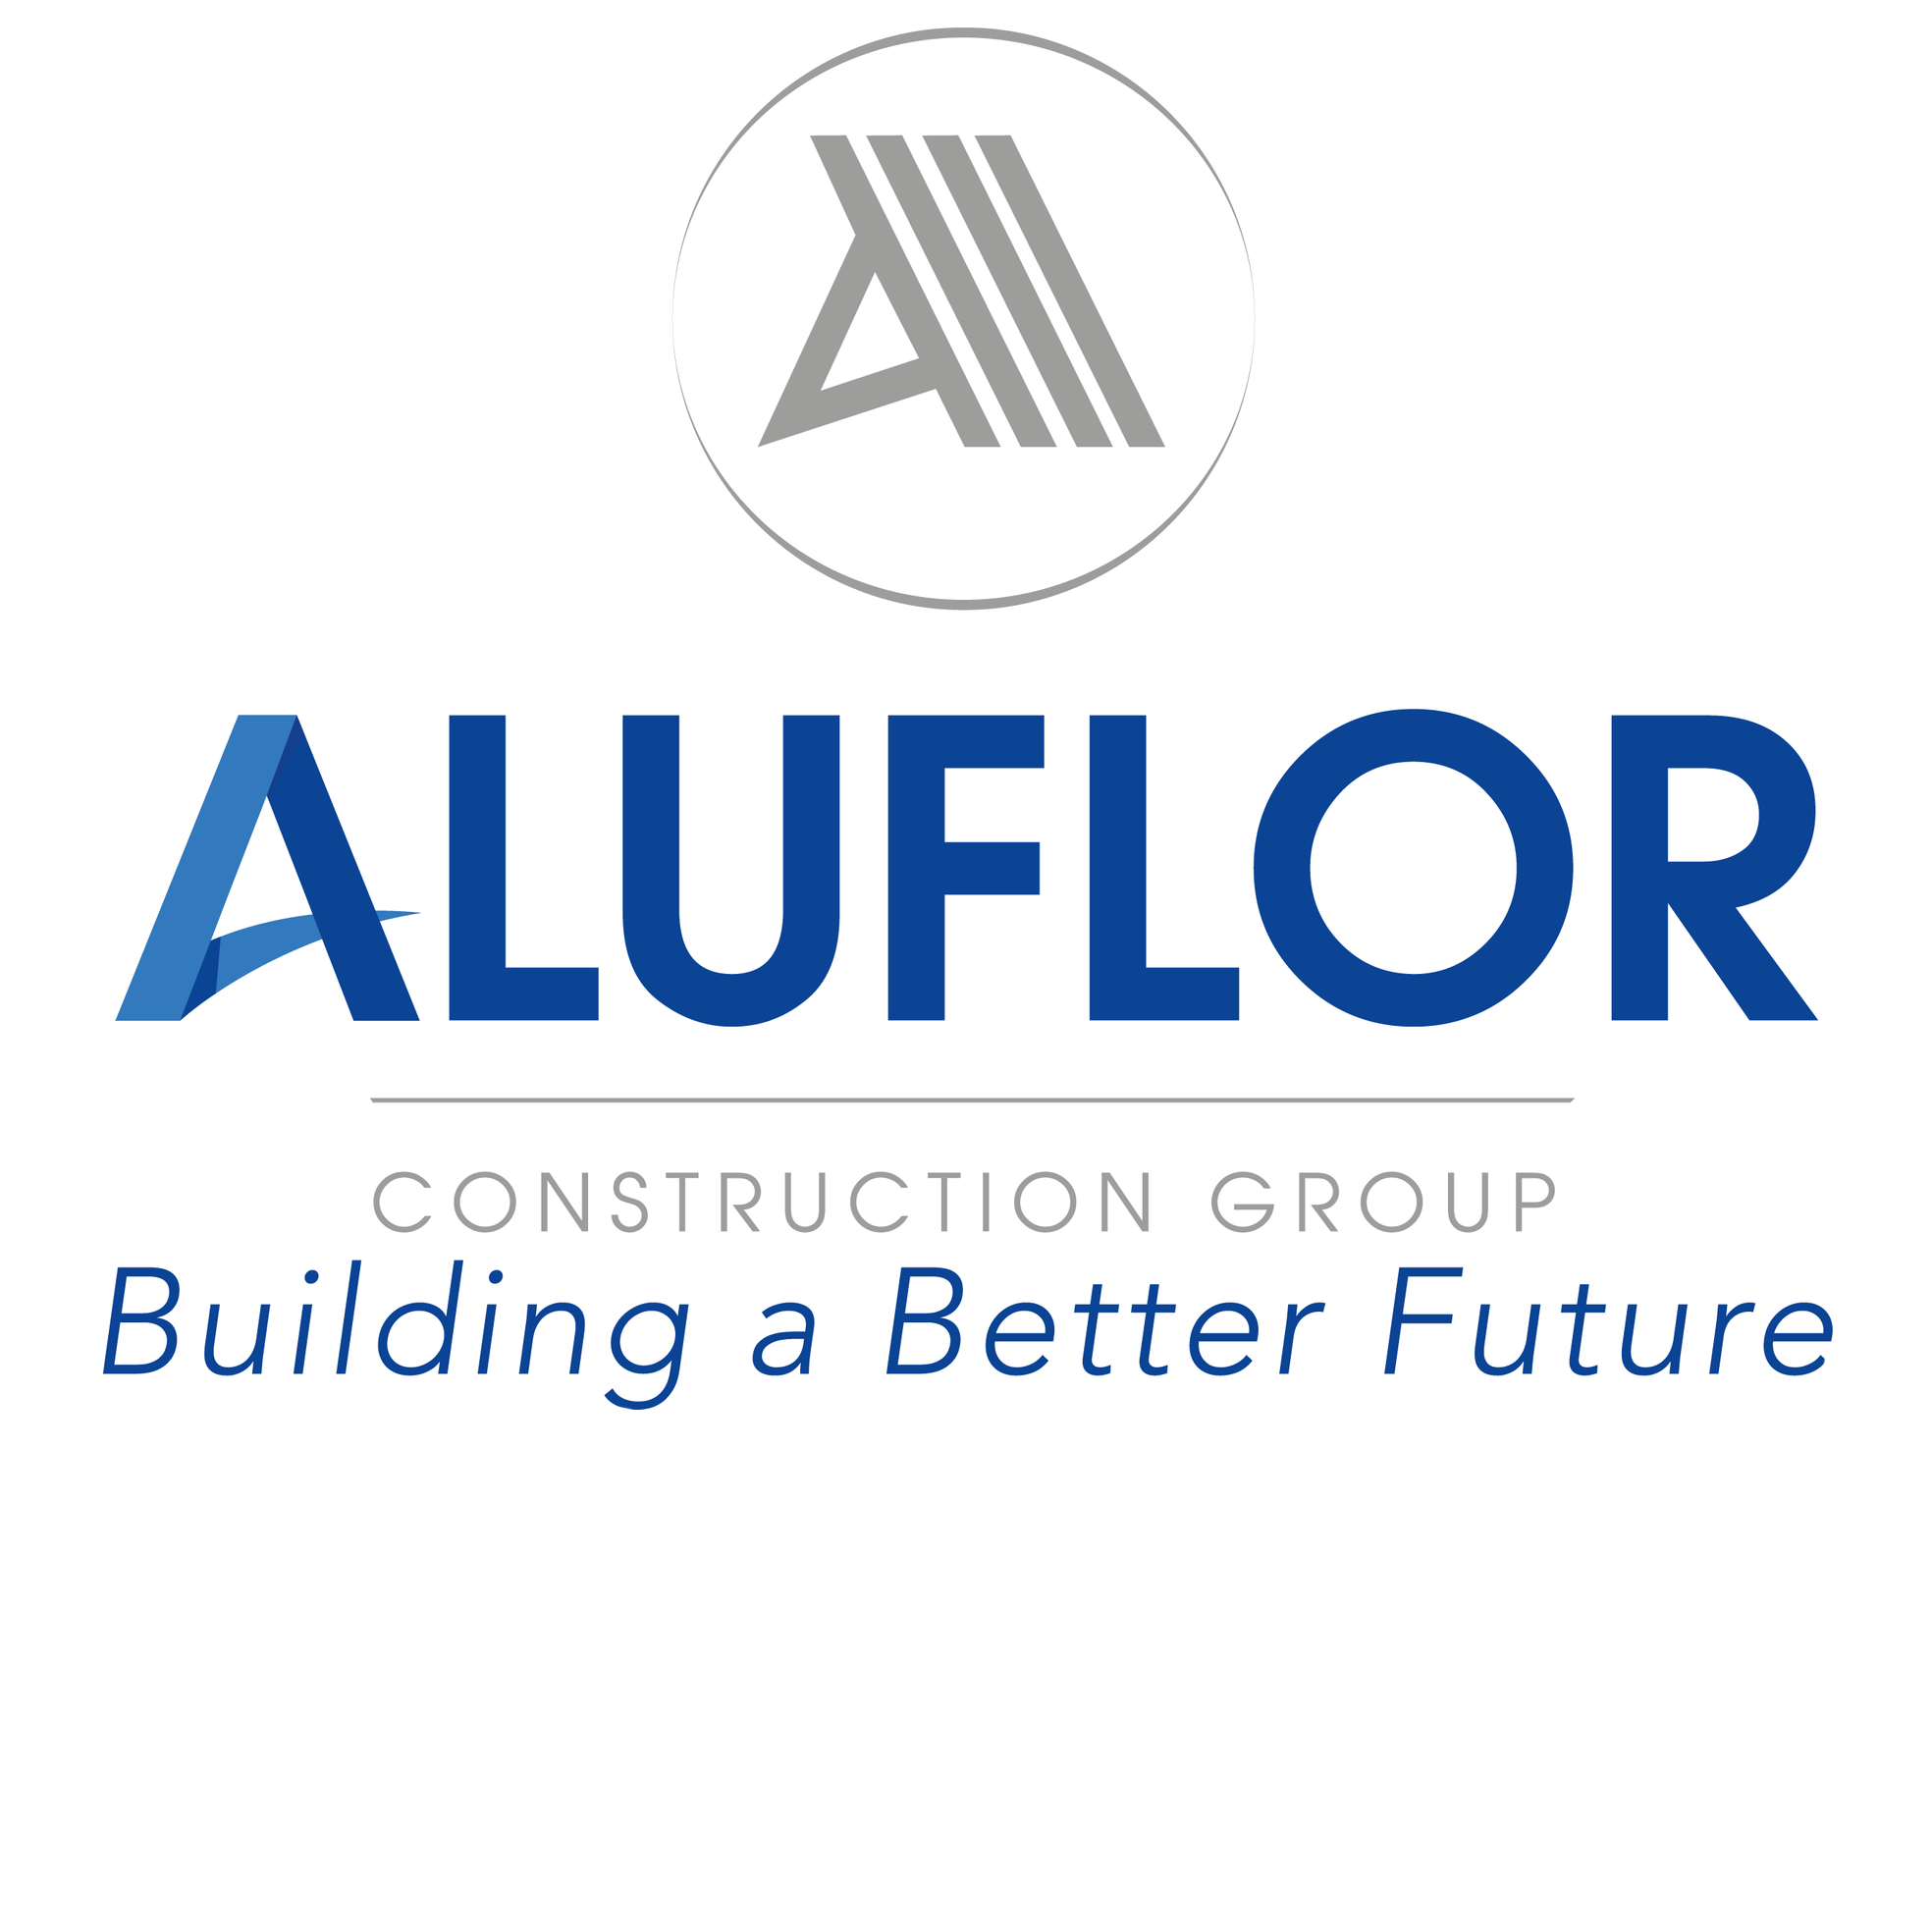 ALUFLOR Construction Group